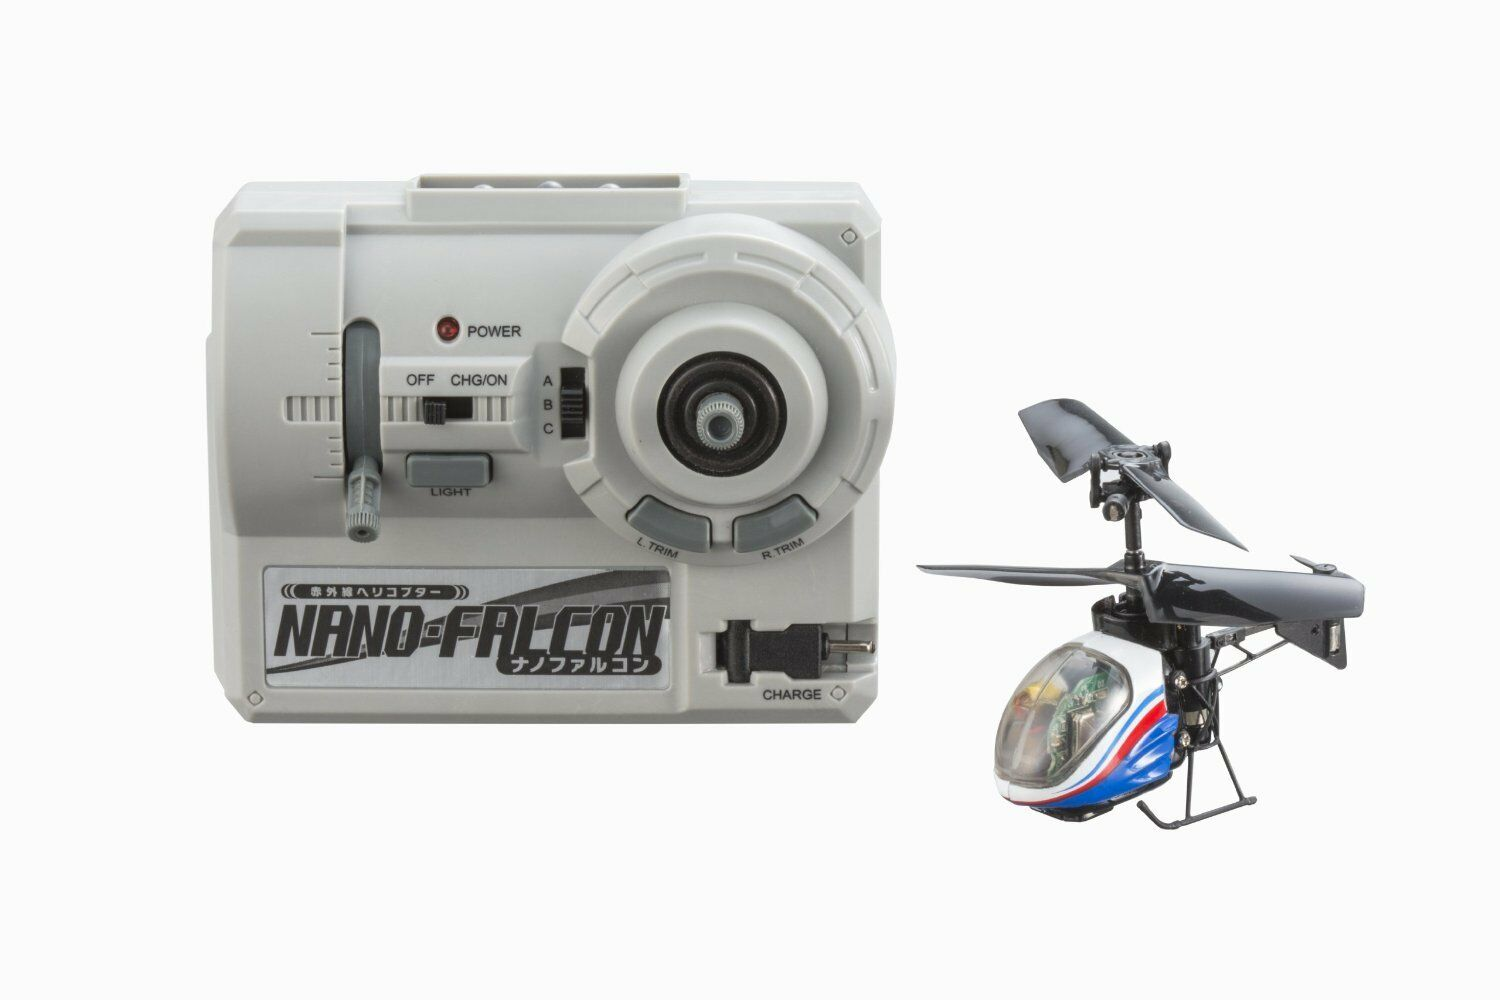 Infrared Helicopter Nano-falcon Nano Falcon 84665 New Japan